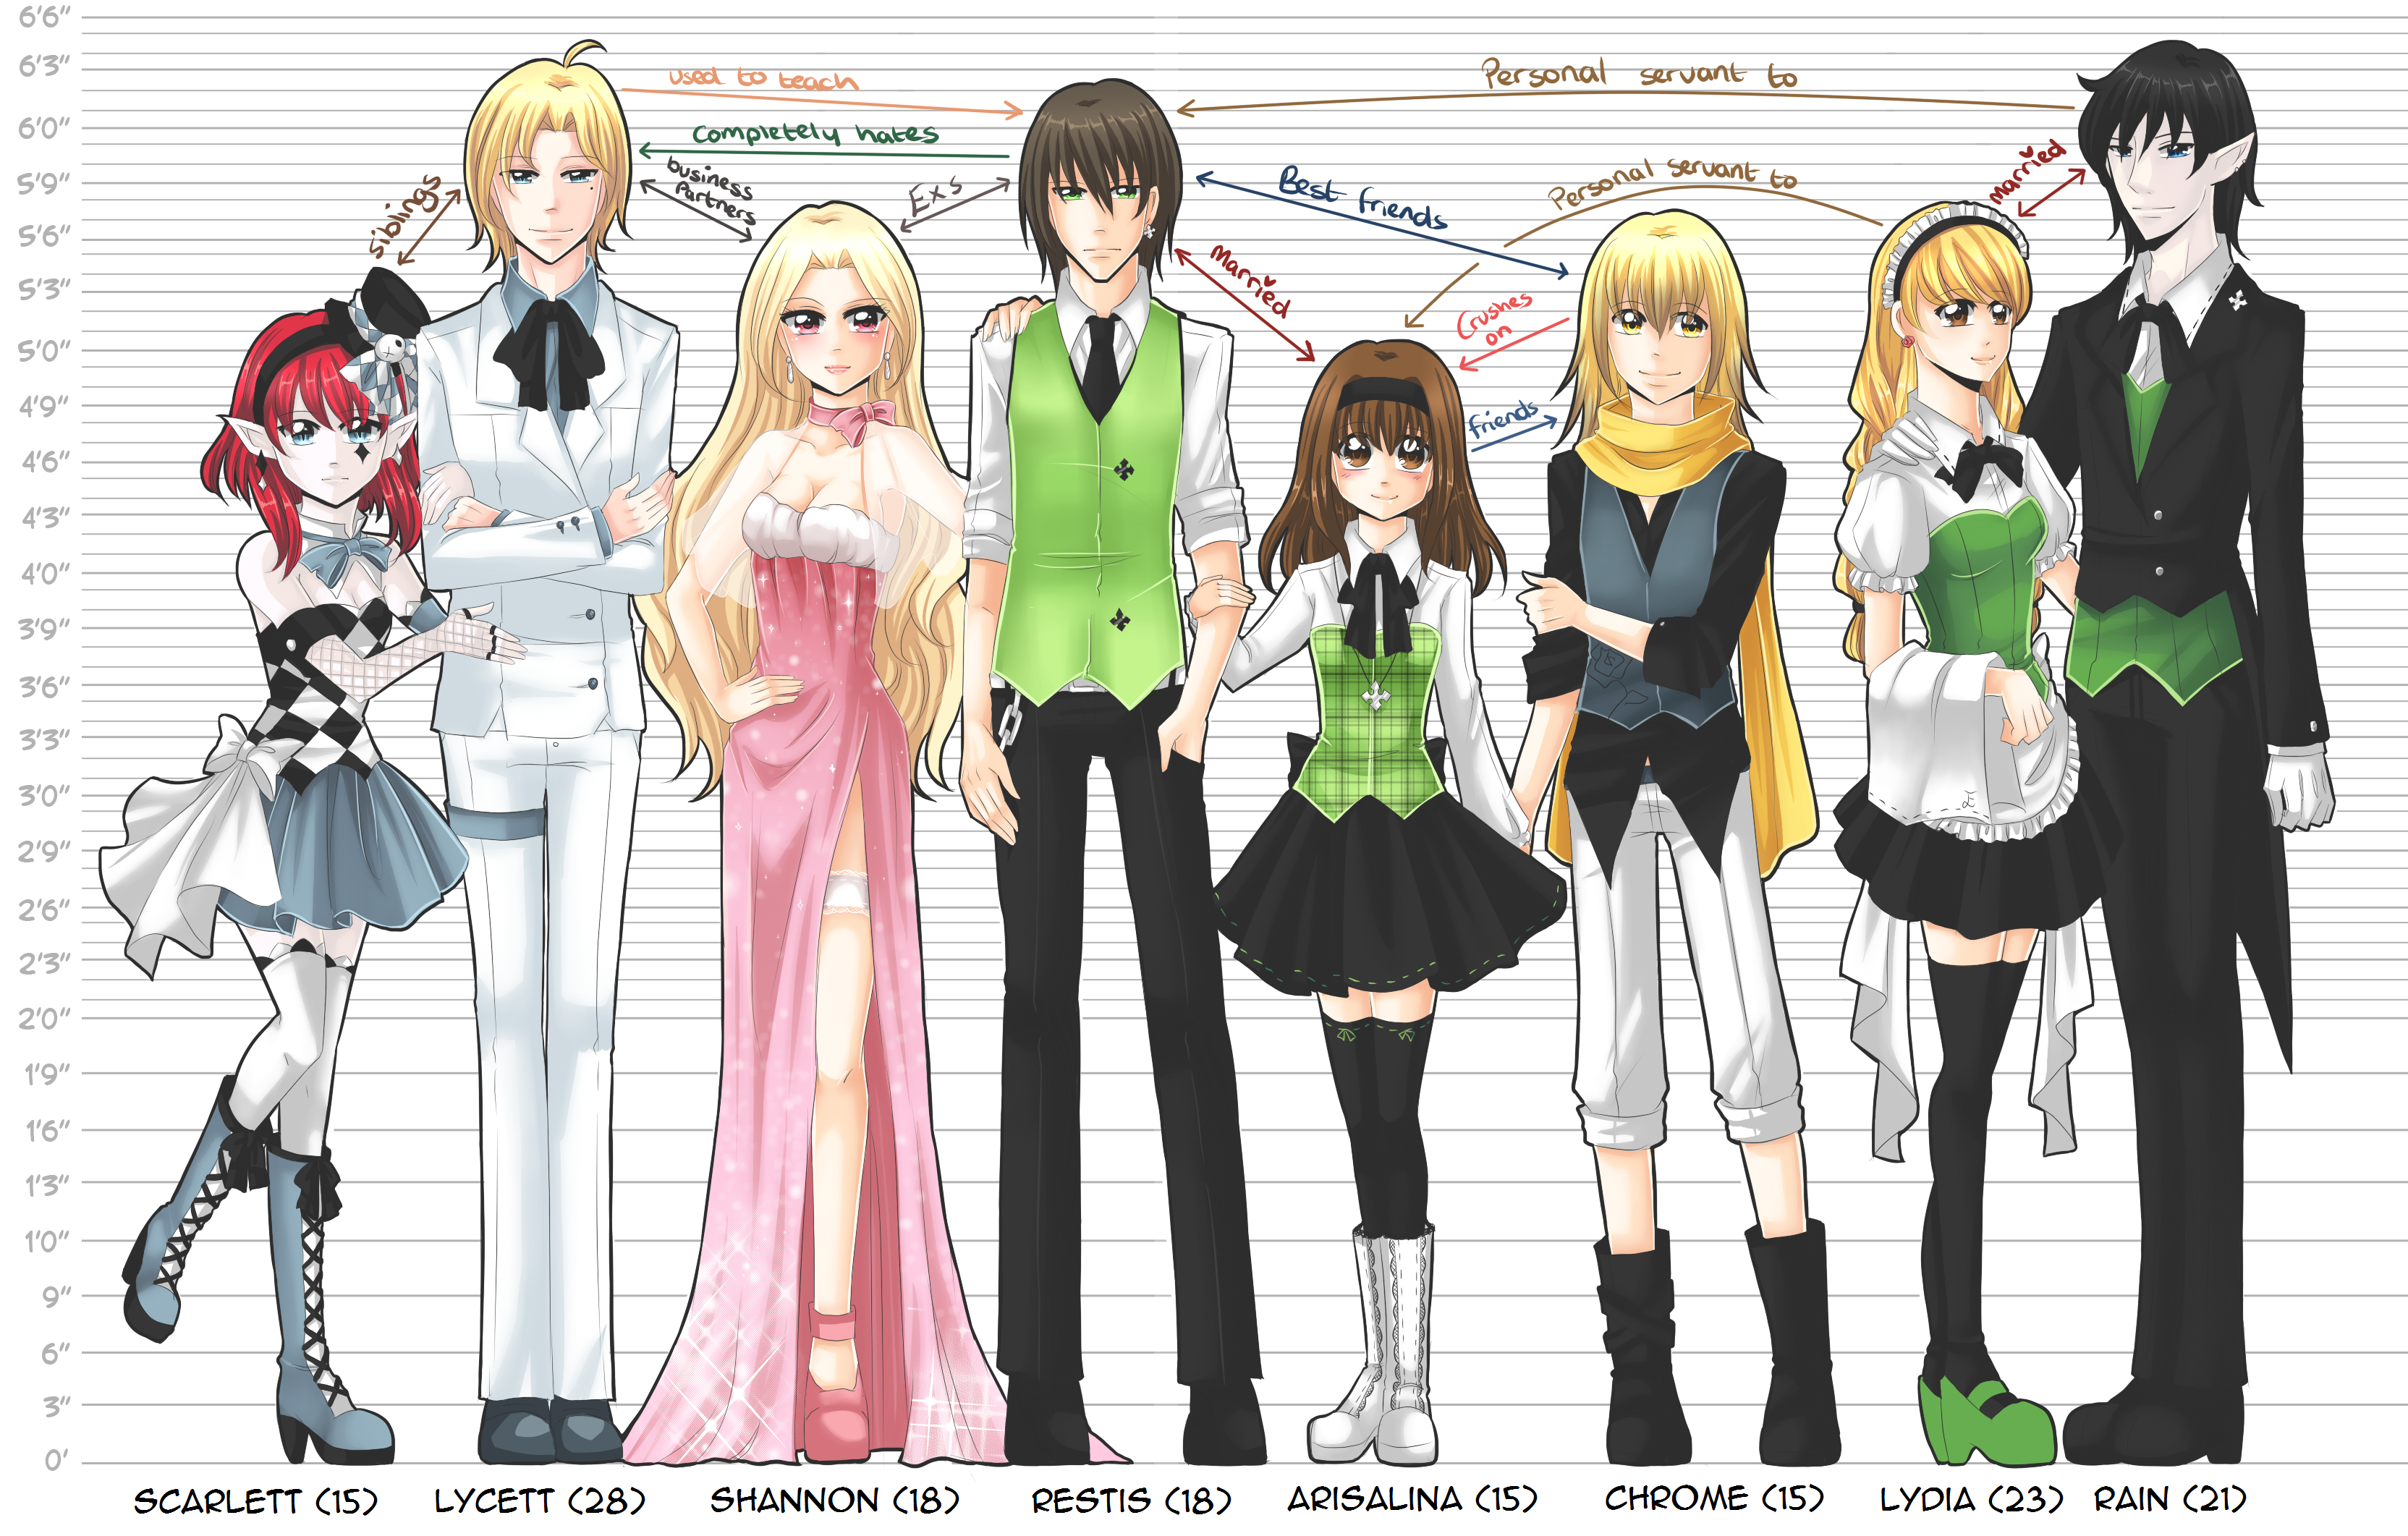 Anime Characters 165 Cm : Tbe character height and relationships by chikukko on